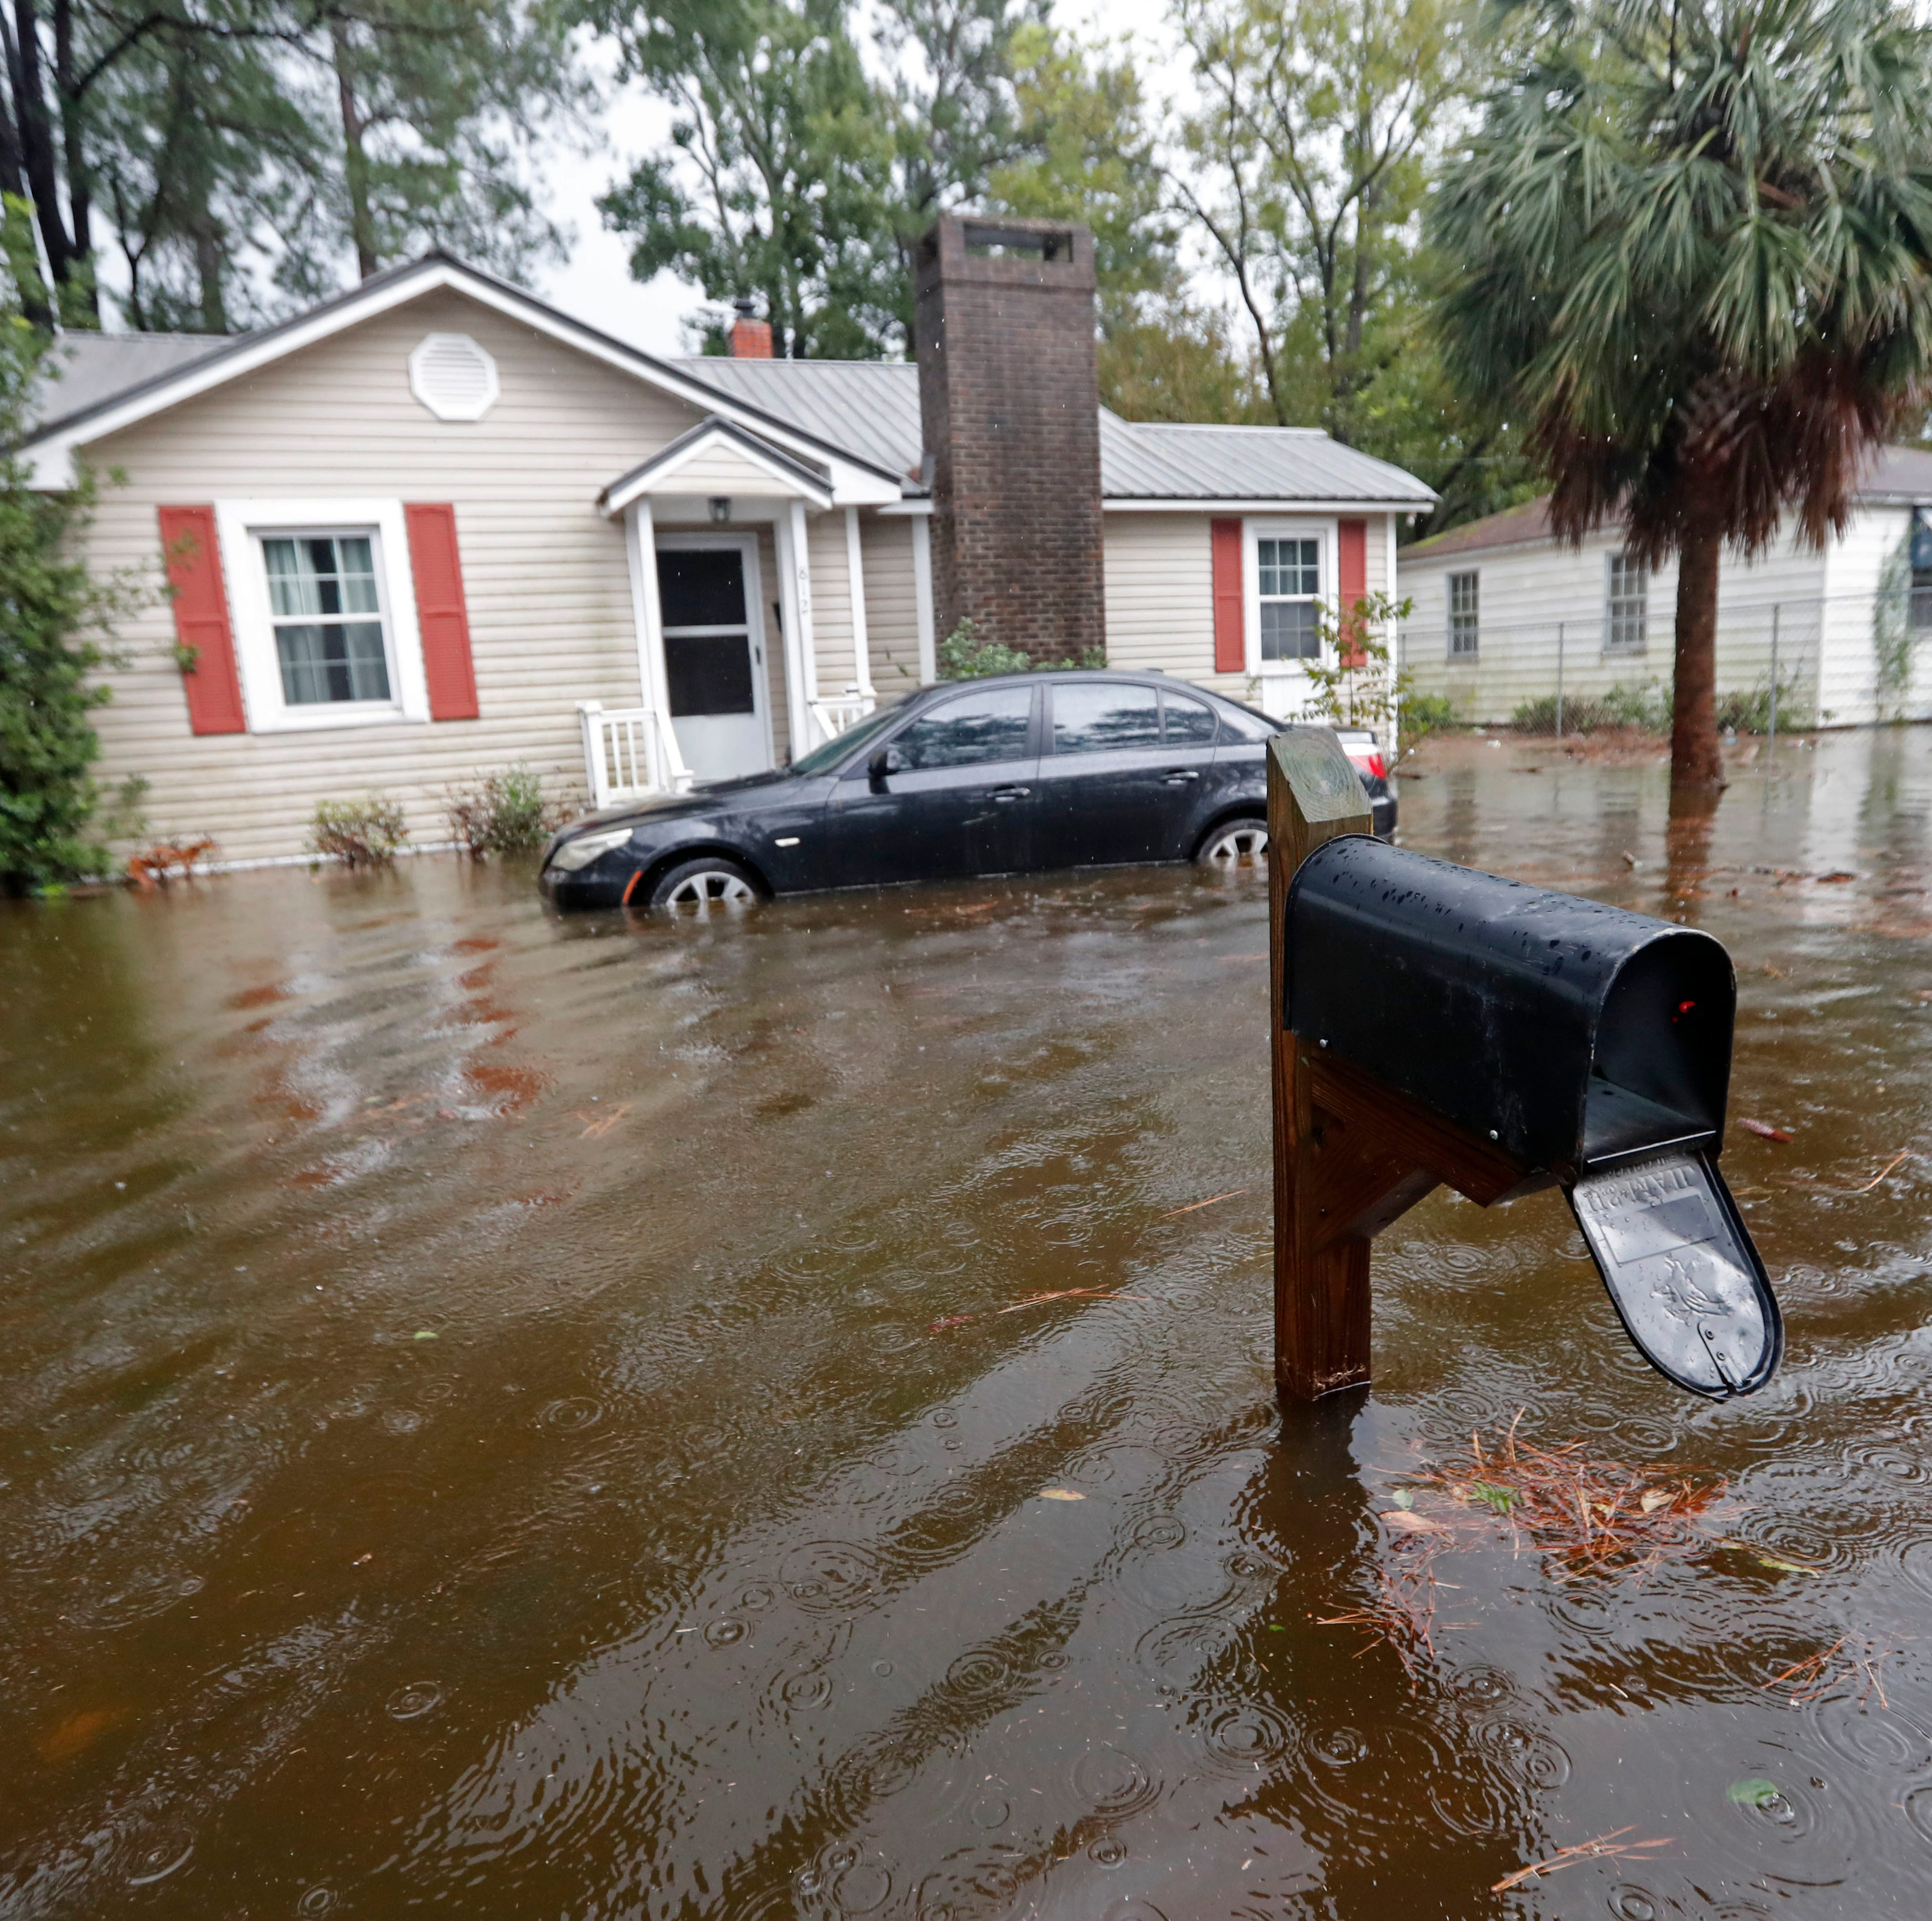 Florence's flooding, Emmy's night, SpaceX to the moon: 5 things you need to know Monday